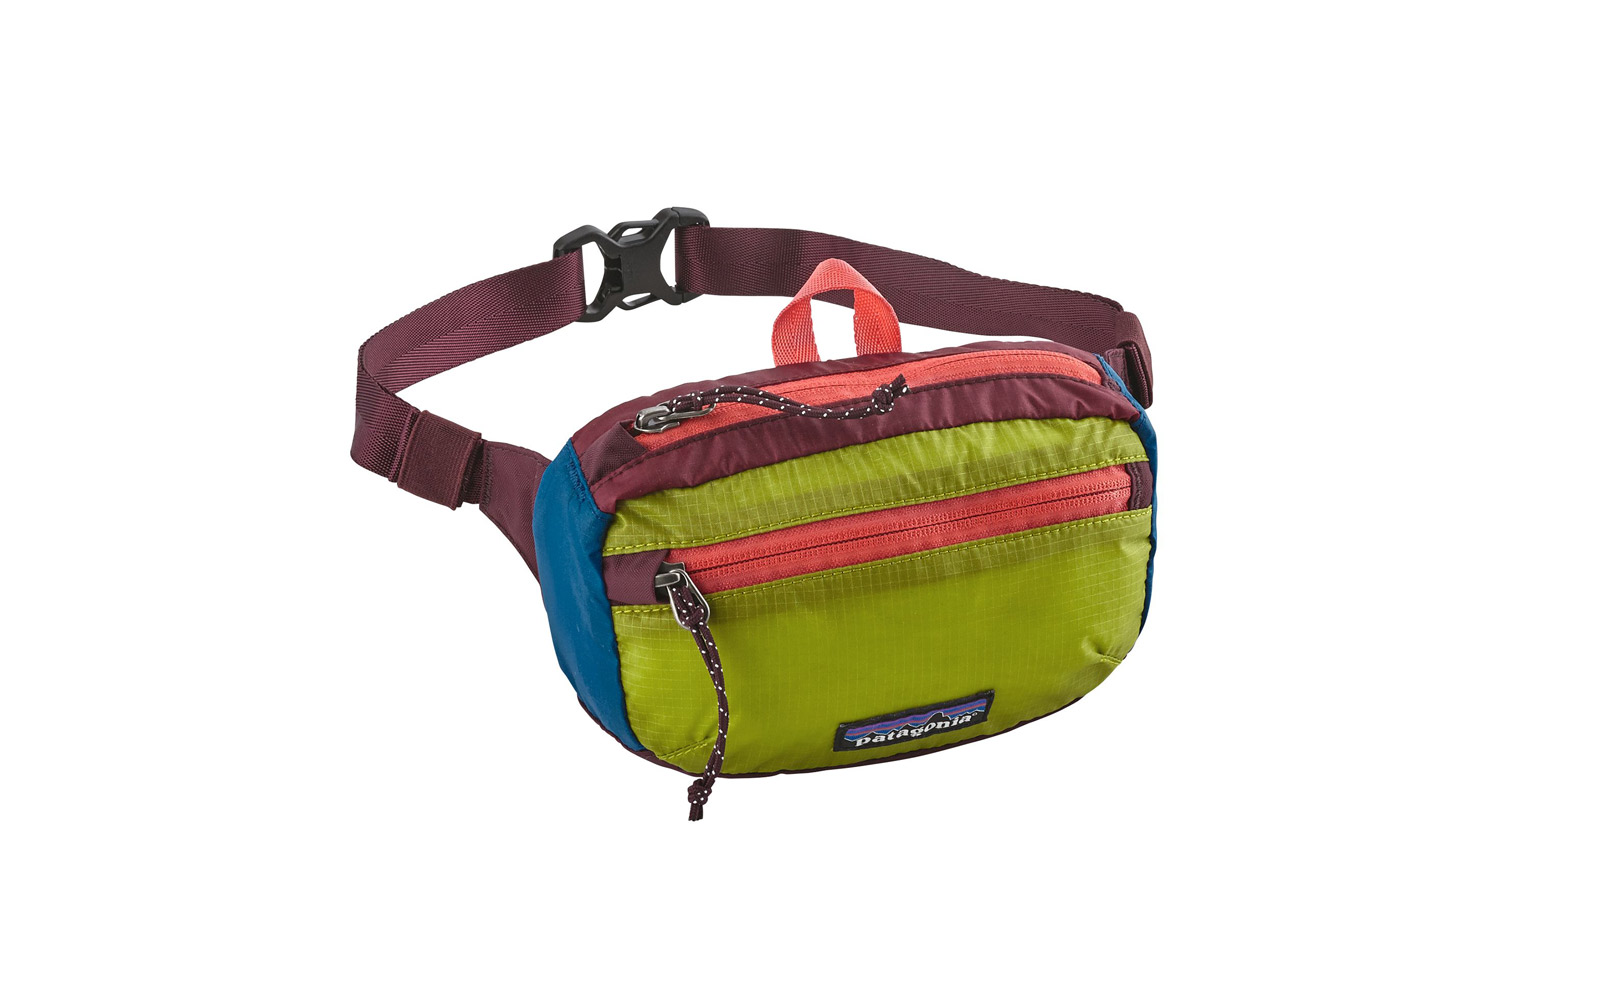 Urban Outfitters Patagonia fanny pack